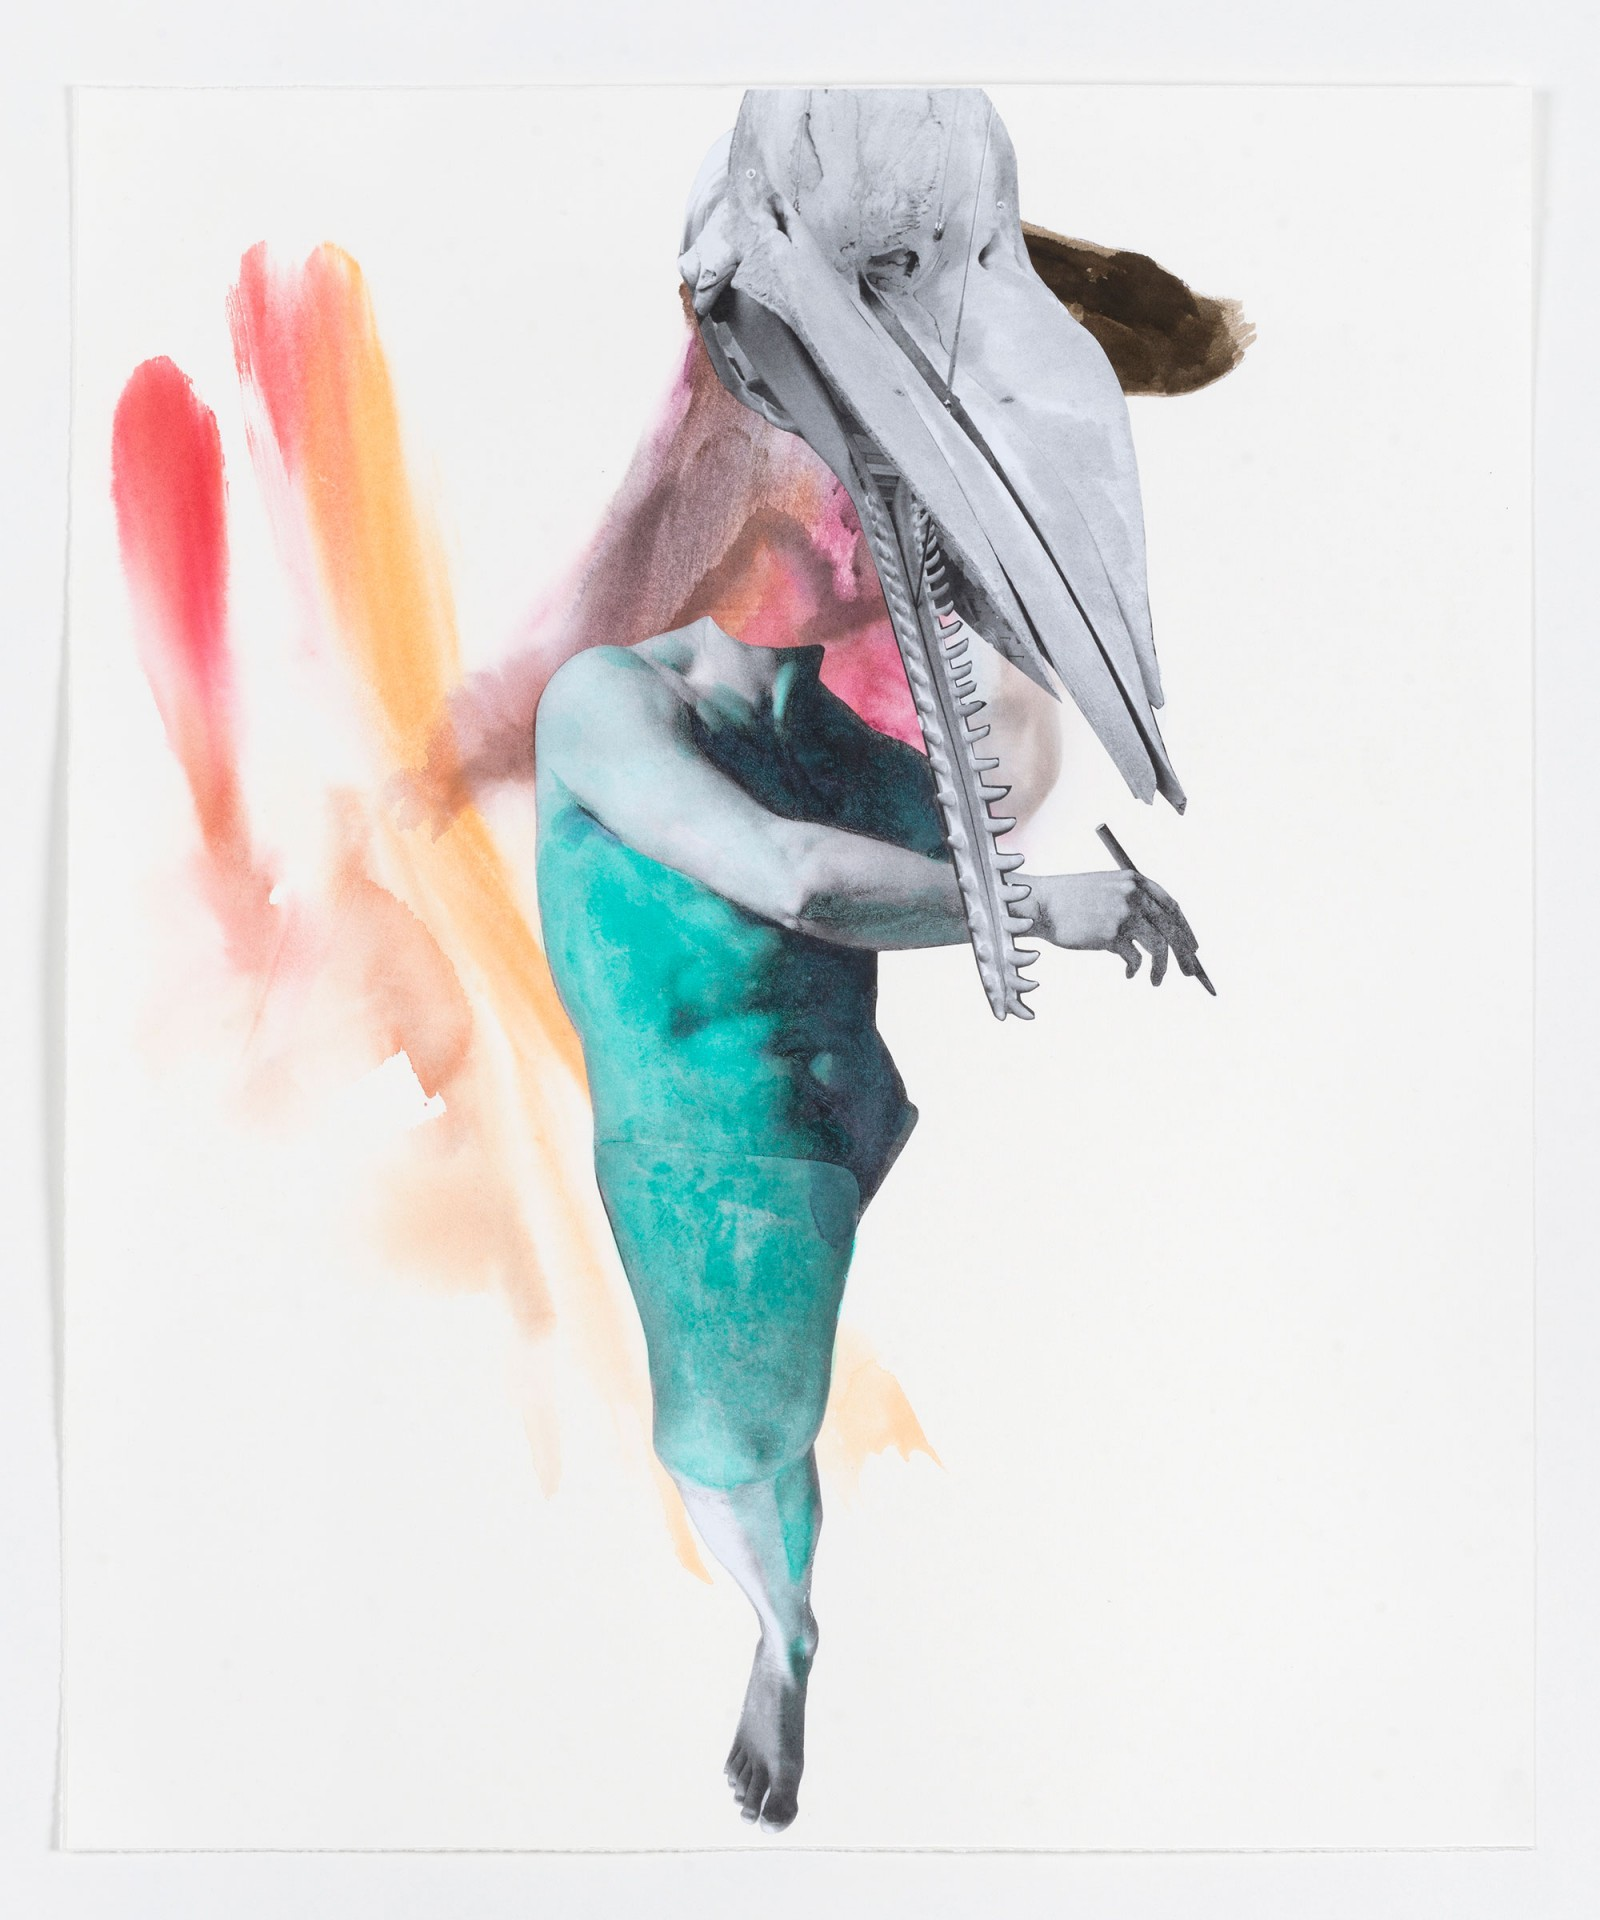 Kim Nekarda: untitled, 2021, watercolor, photocopy & ink on paper, 51 x 42 cm, private collection berlin